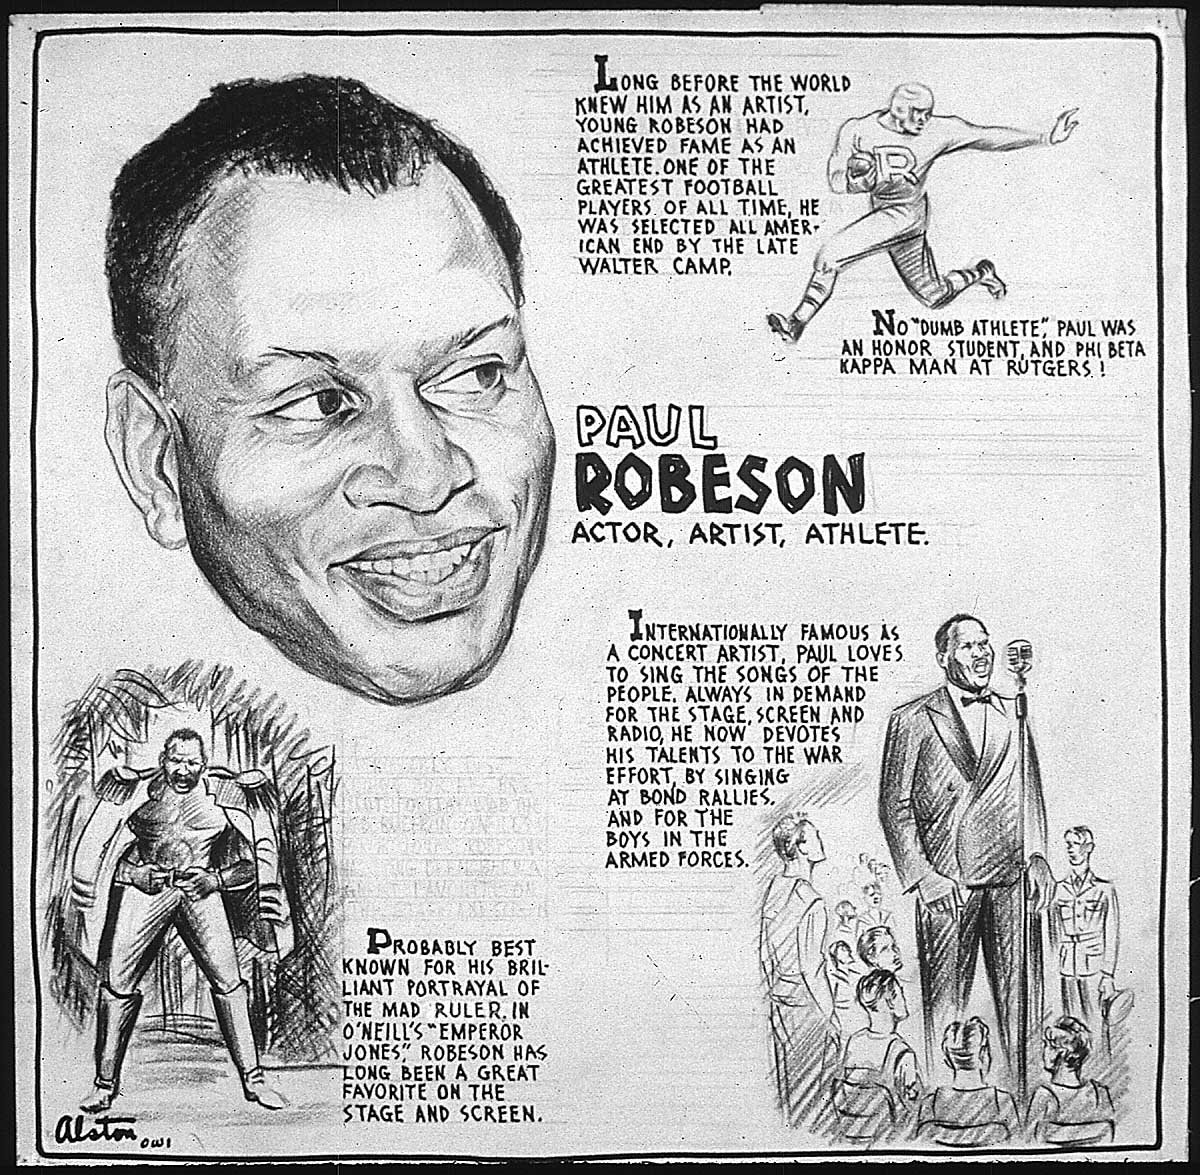 161114-alston-drawing-of-paul-robeson